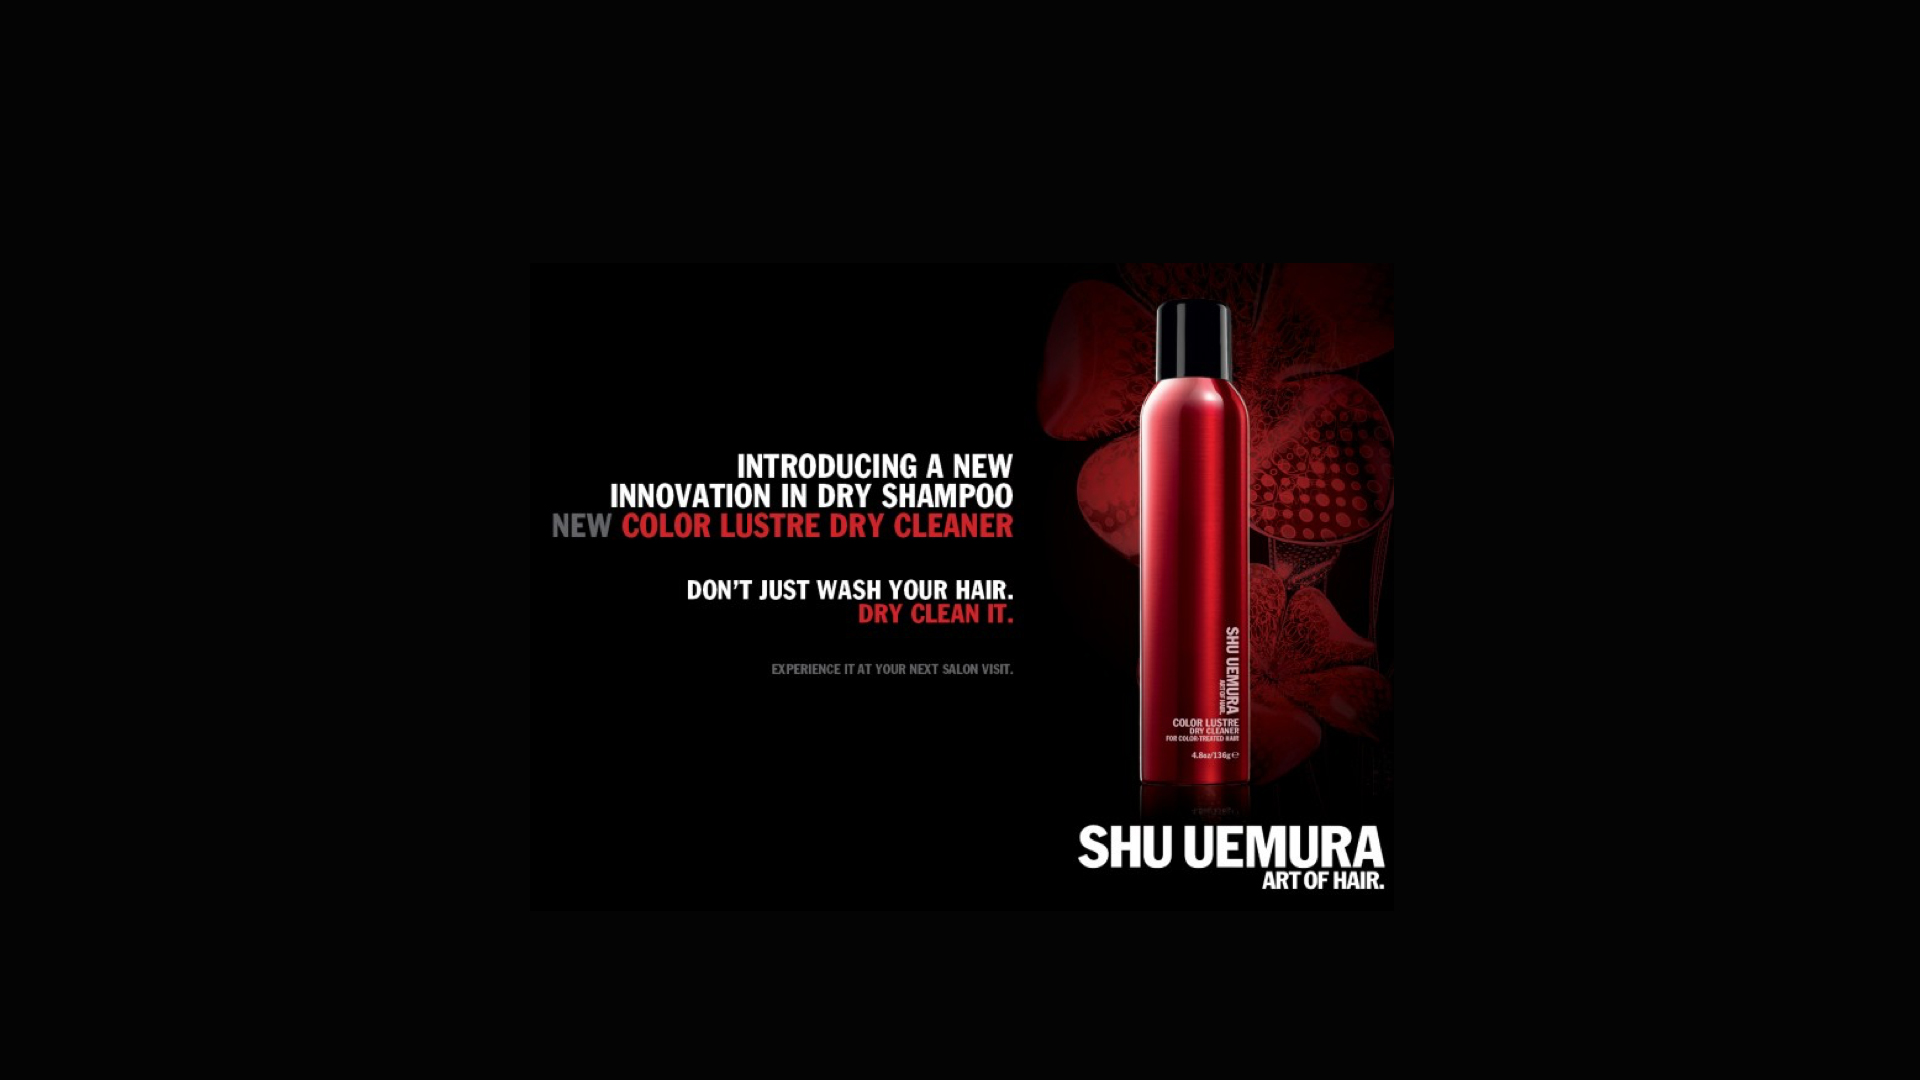 1 shu uemura color lustre dry cleaner 2 in 1 dry shampoo for Aalam the salon reviews